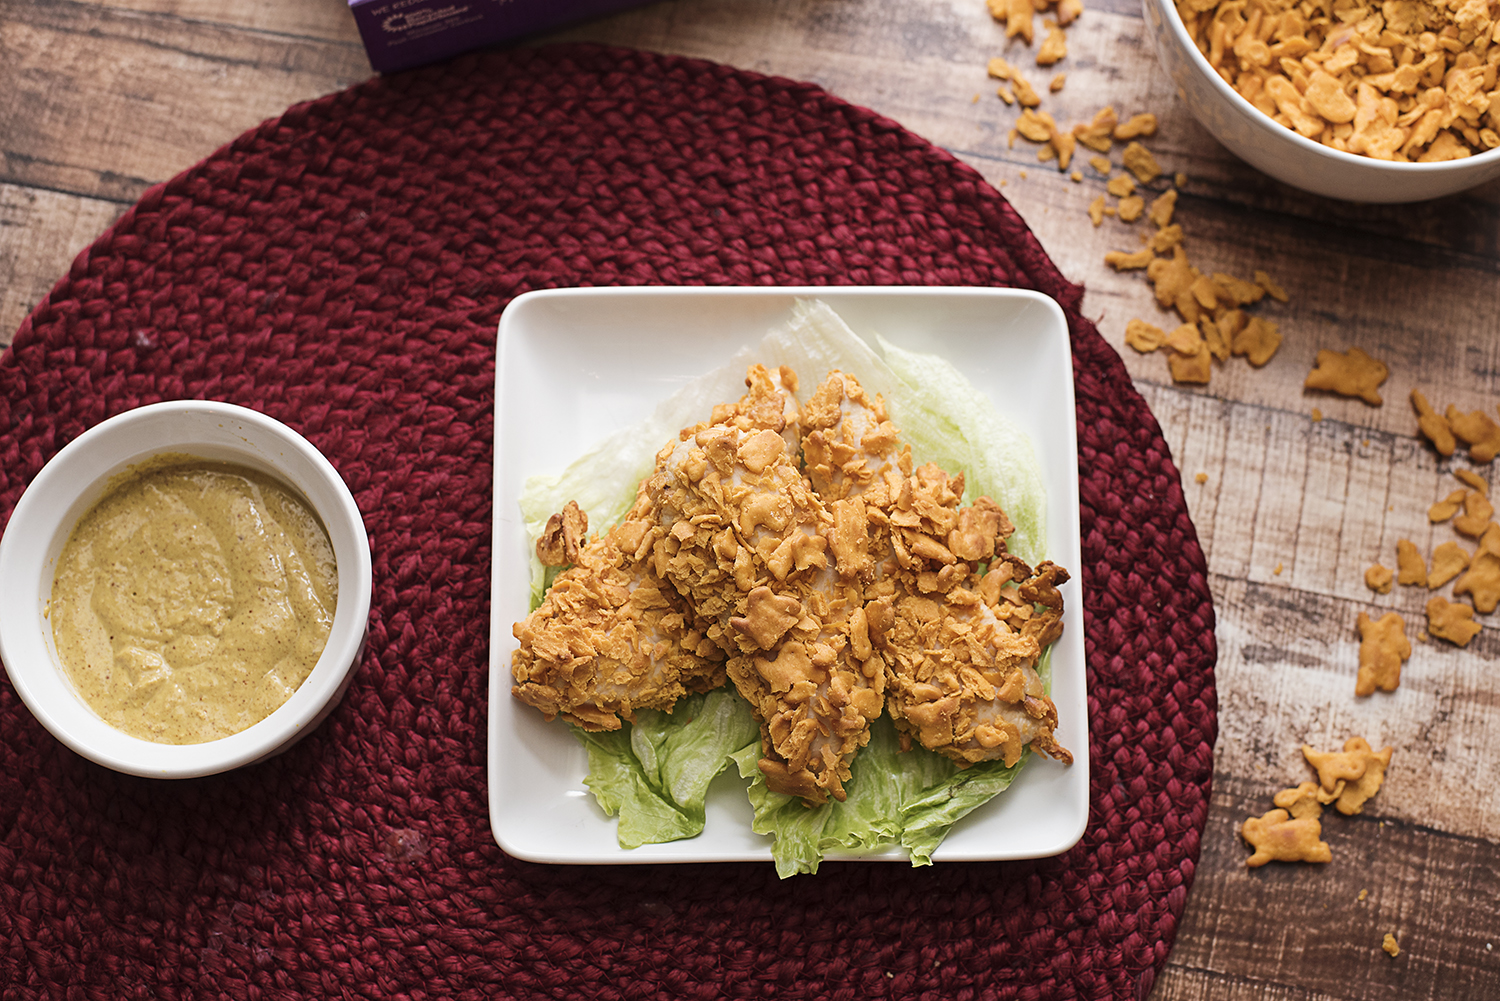 Baked Cheddar Crusted Chicken Fingers